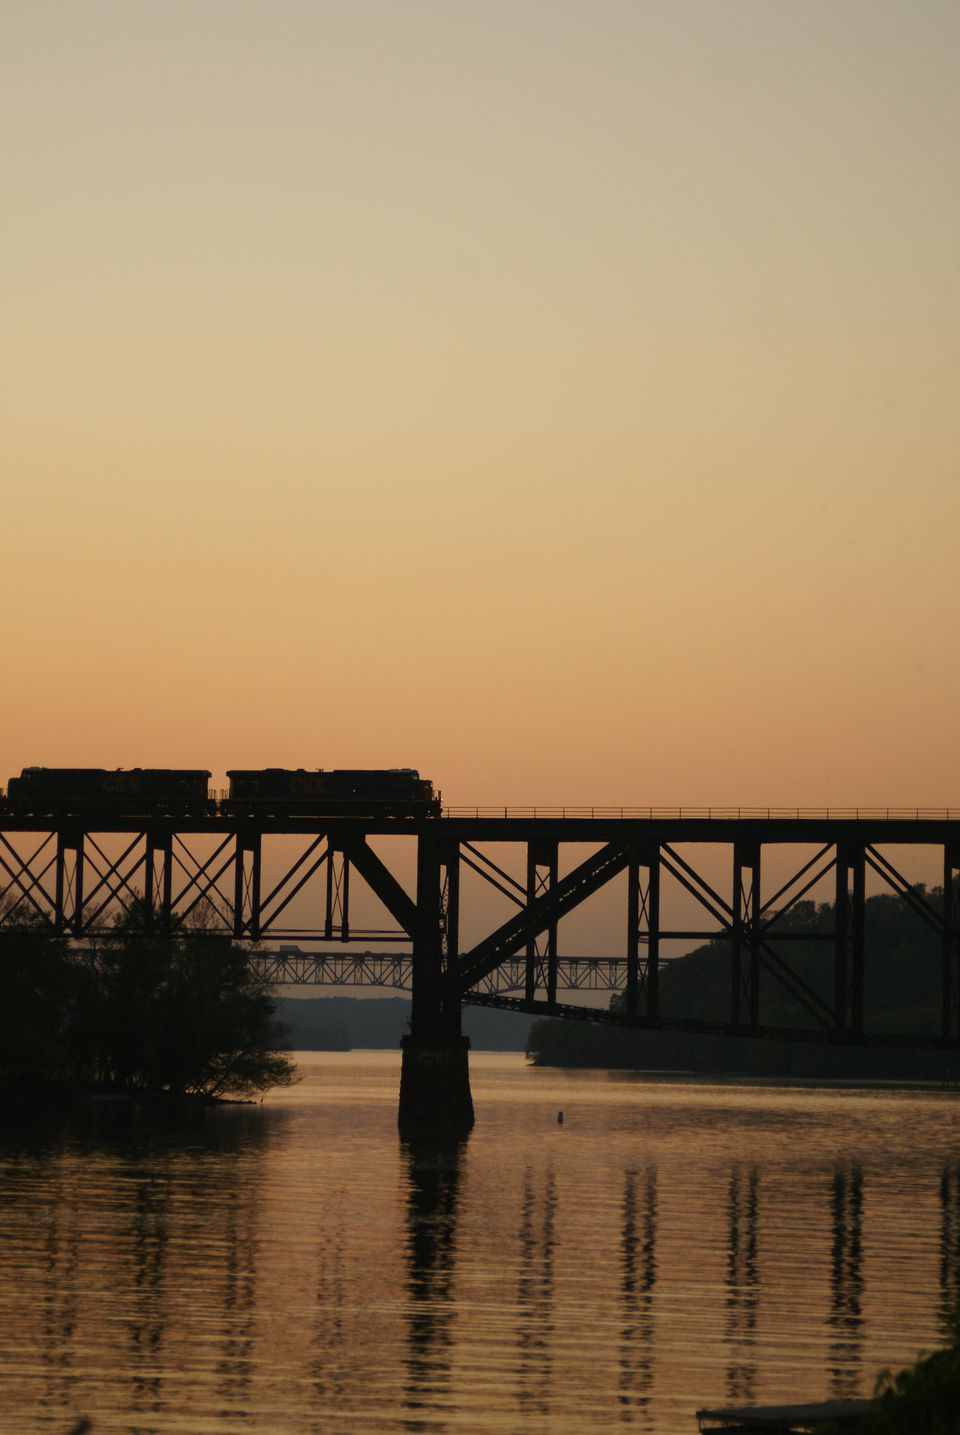 Train crossing a river at sunset.